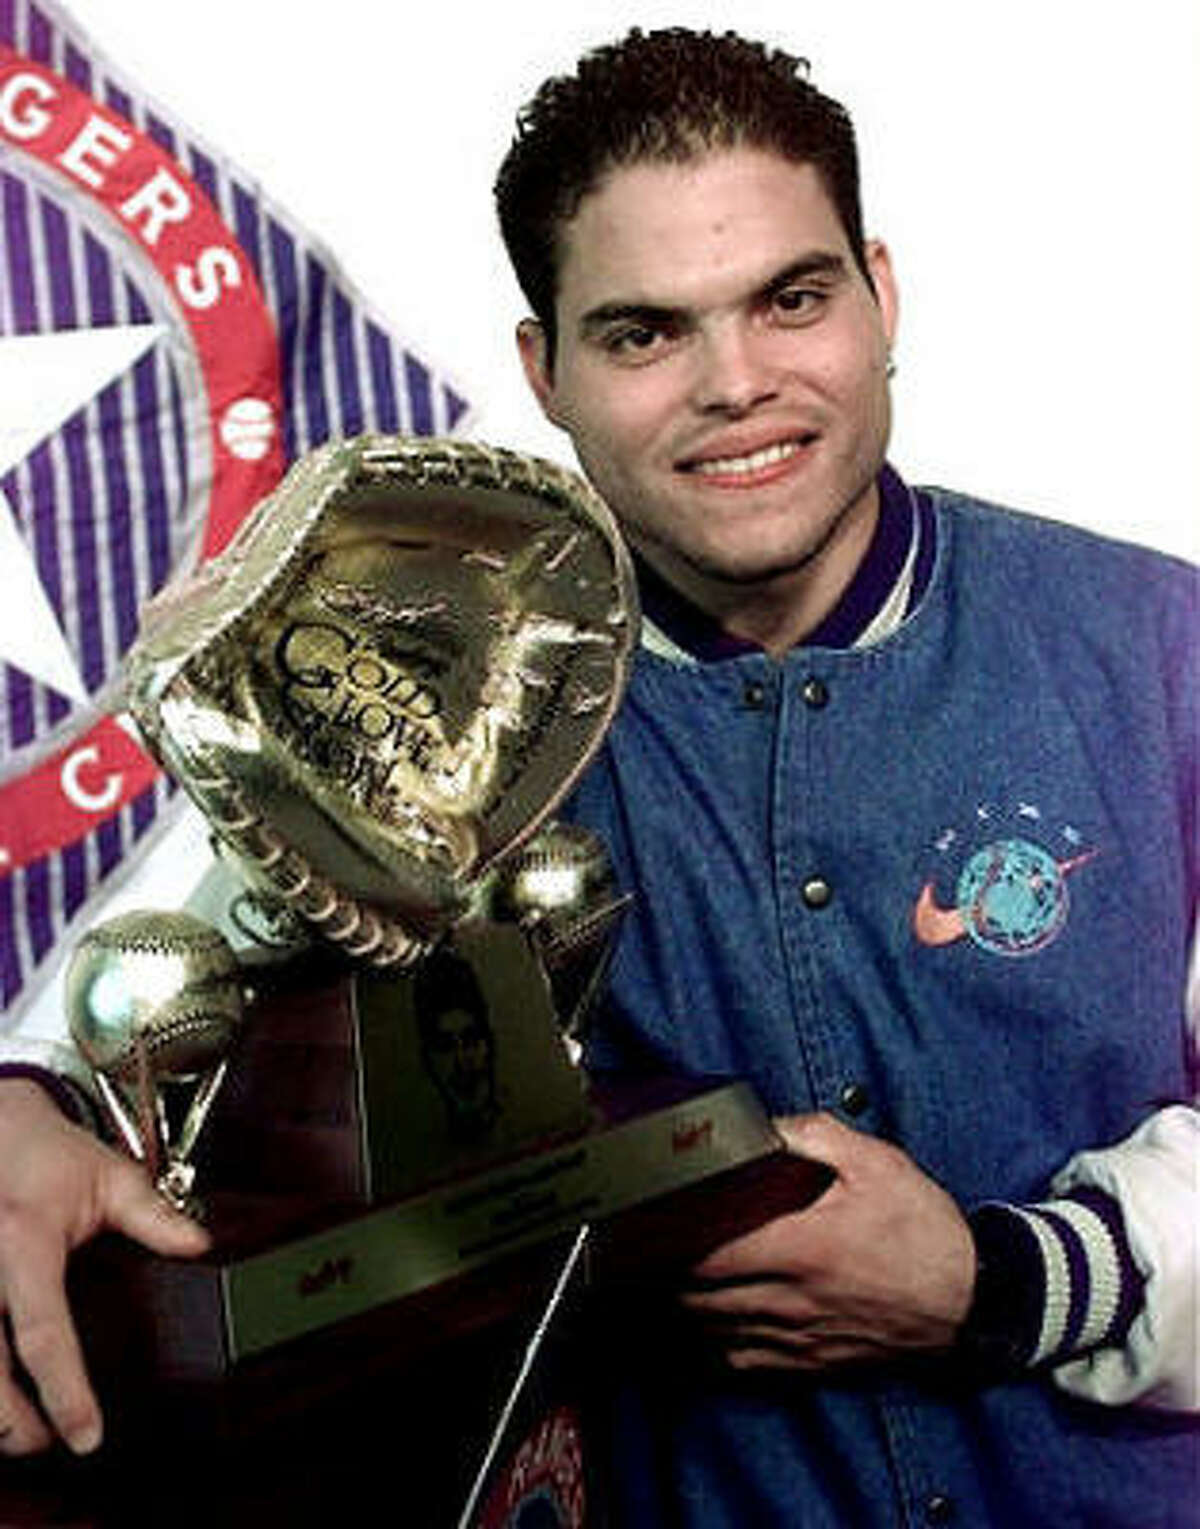 1992 Rodriguez had a break out year making his first all-star team and winning his first Gold Glove Award.